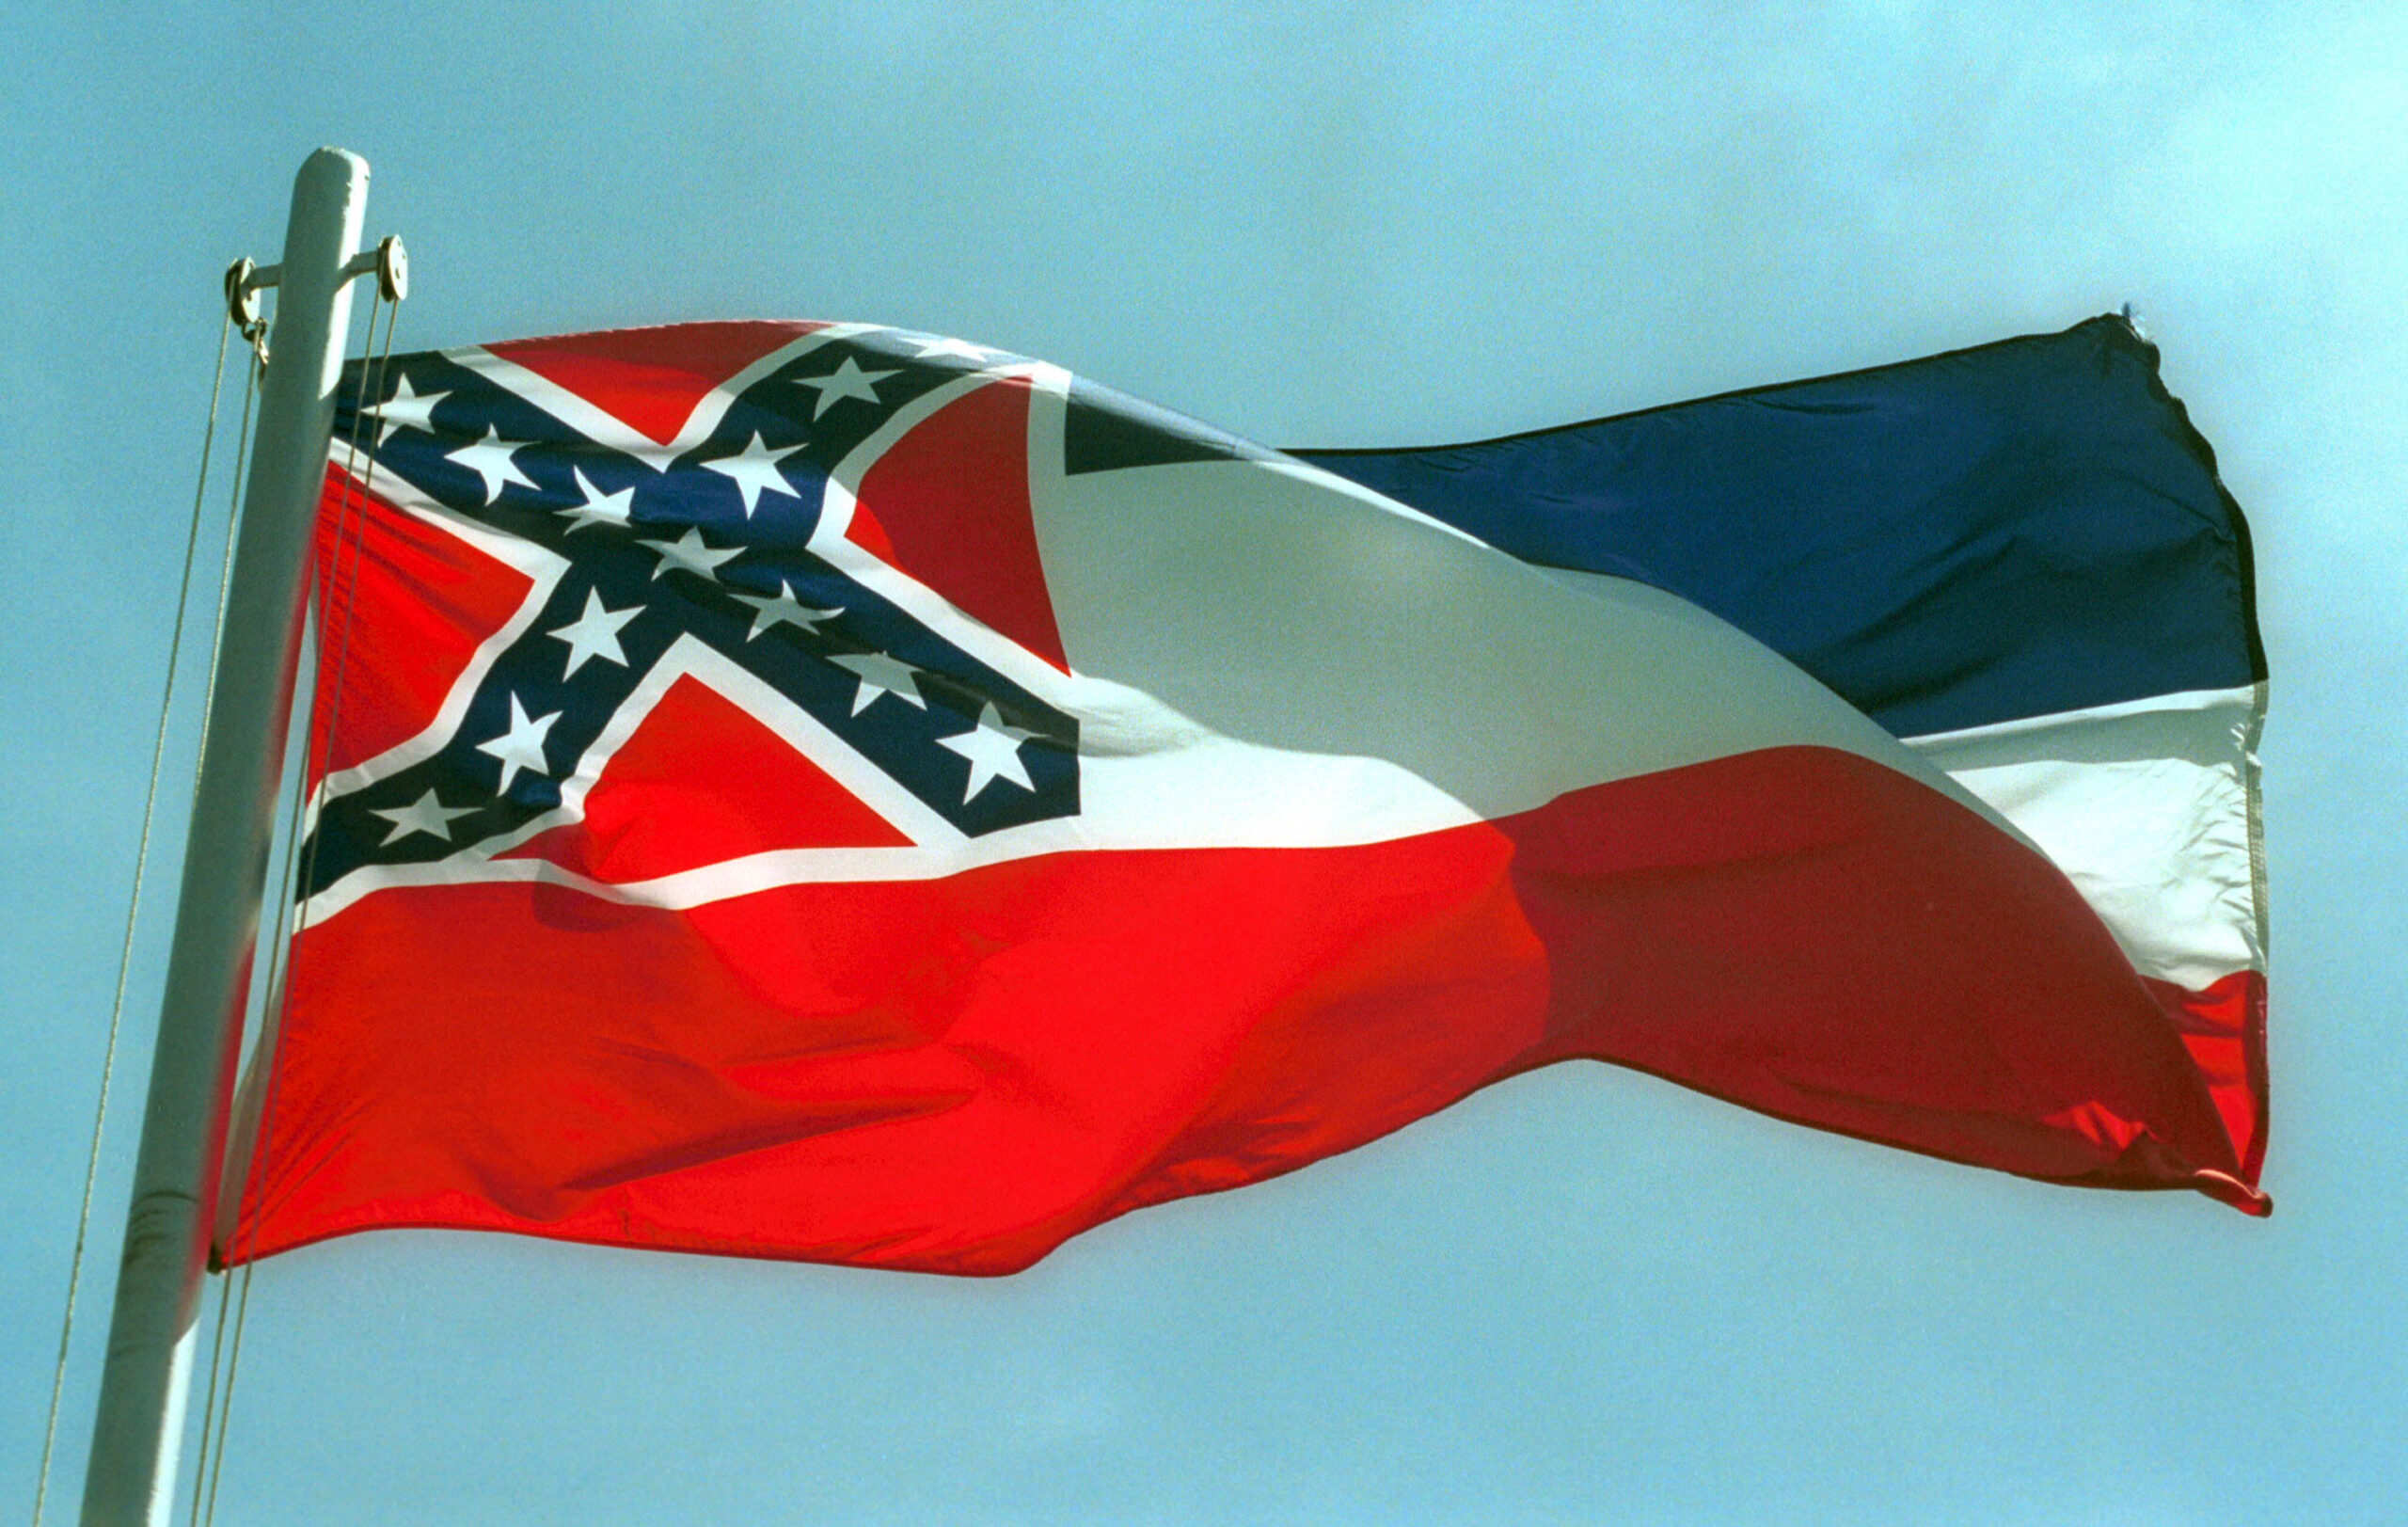 MS  votes to drop the Confederate emblem from its state flag